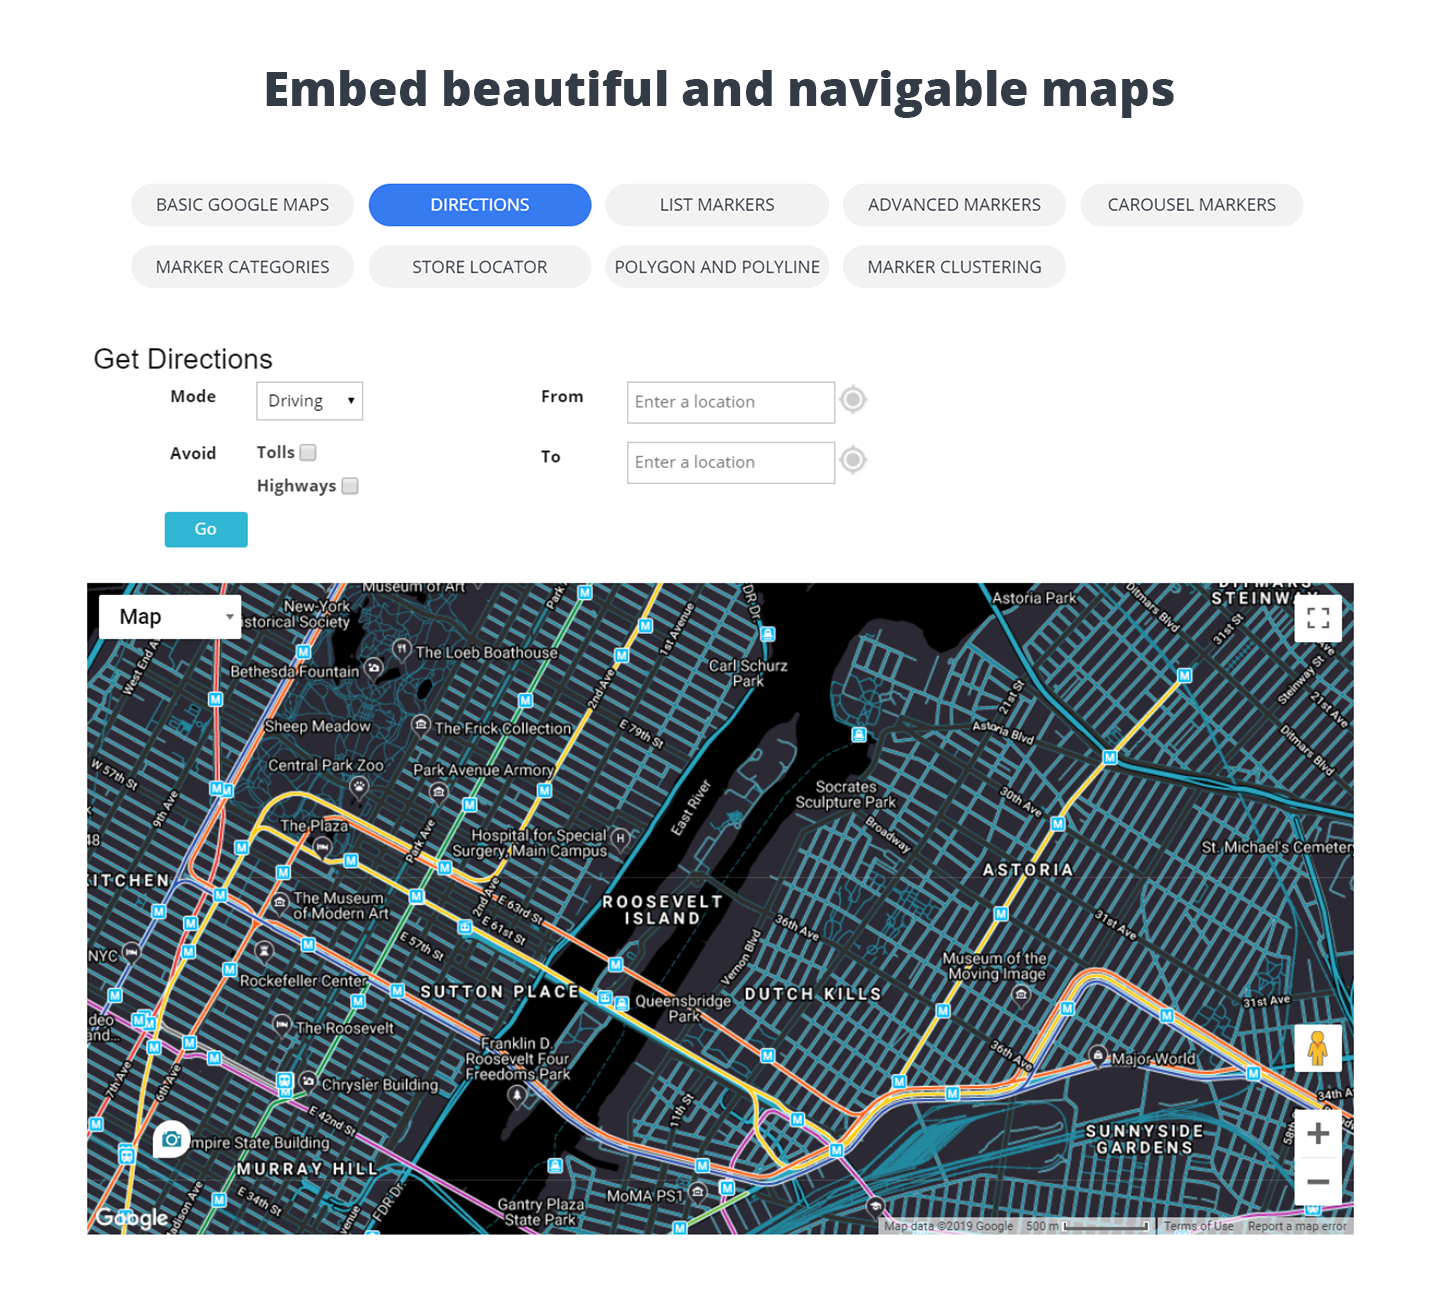 WD Google Maps – Google Maps builder Plugin Download Free ... on download bing maps, download business maps, download london tube map, online maps, download icons, topographic maps,